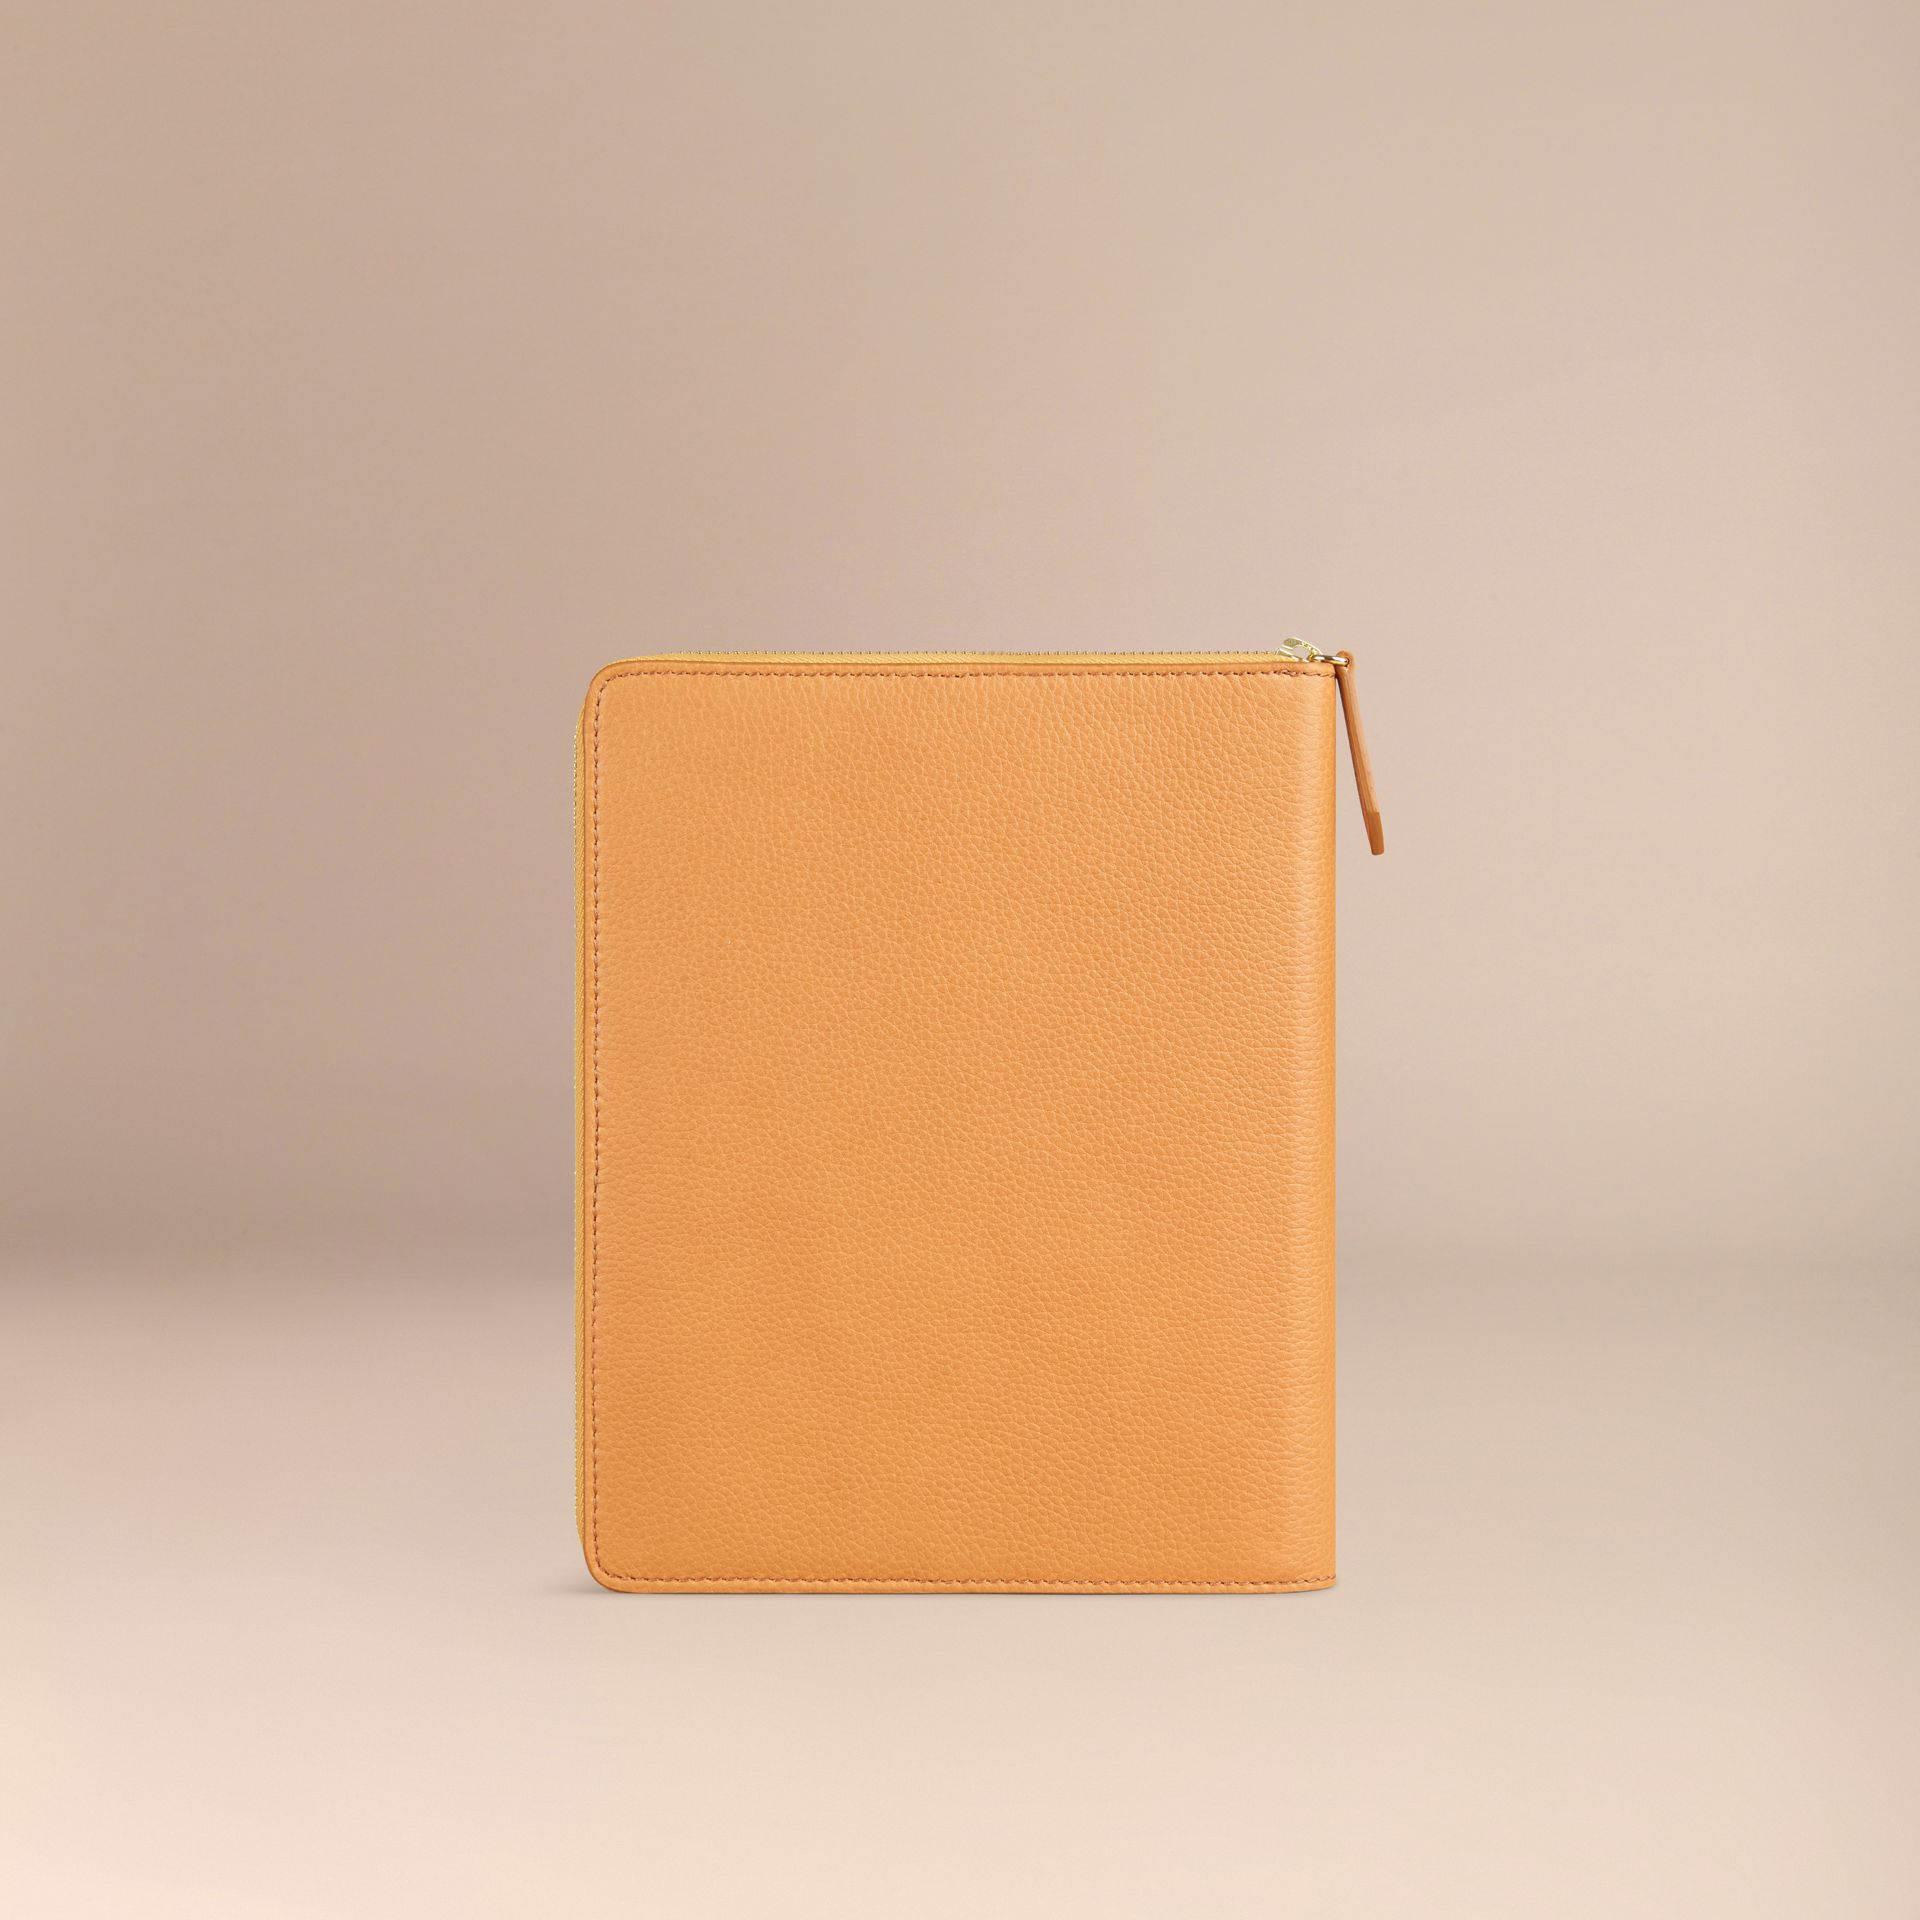 Ziparound Grainy Leather A5 Notebook in Ochre Yellow | Burberry - gallery image 4